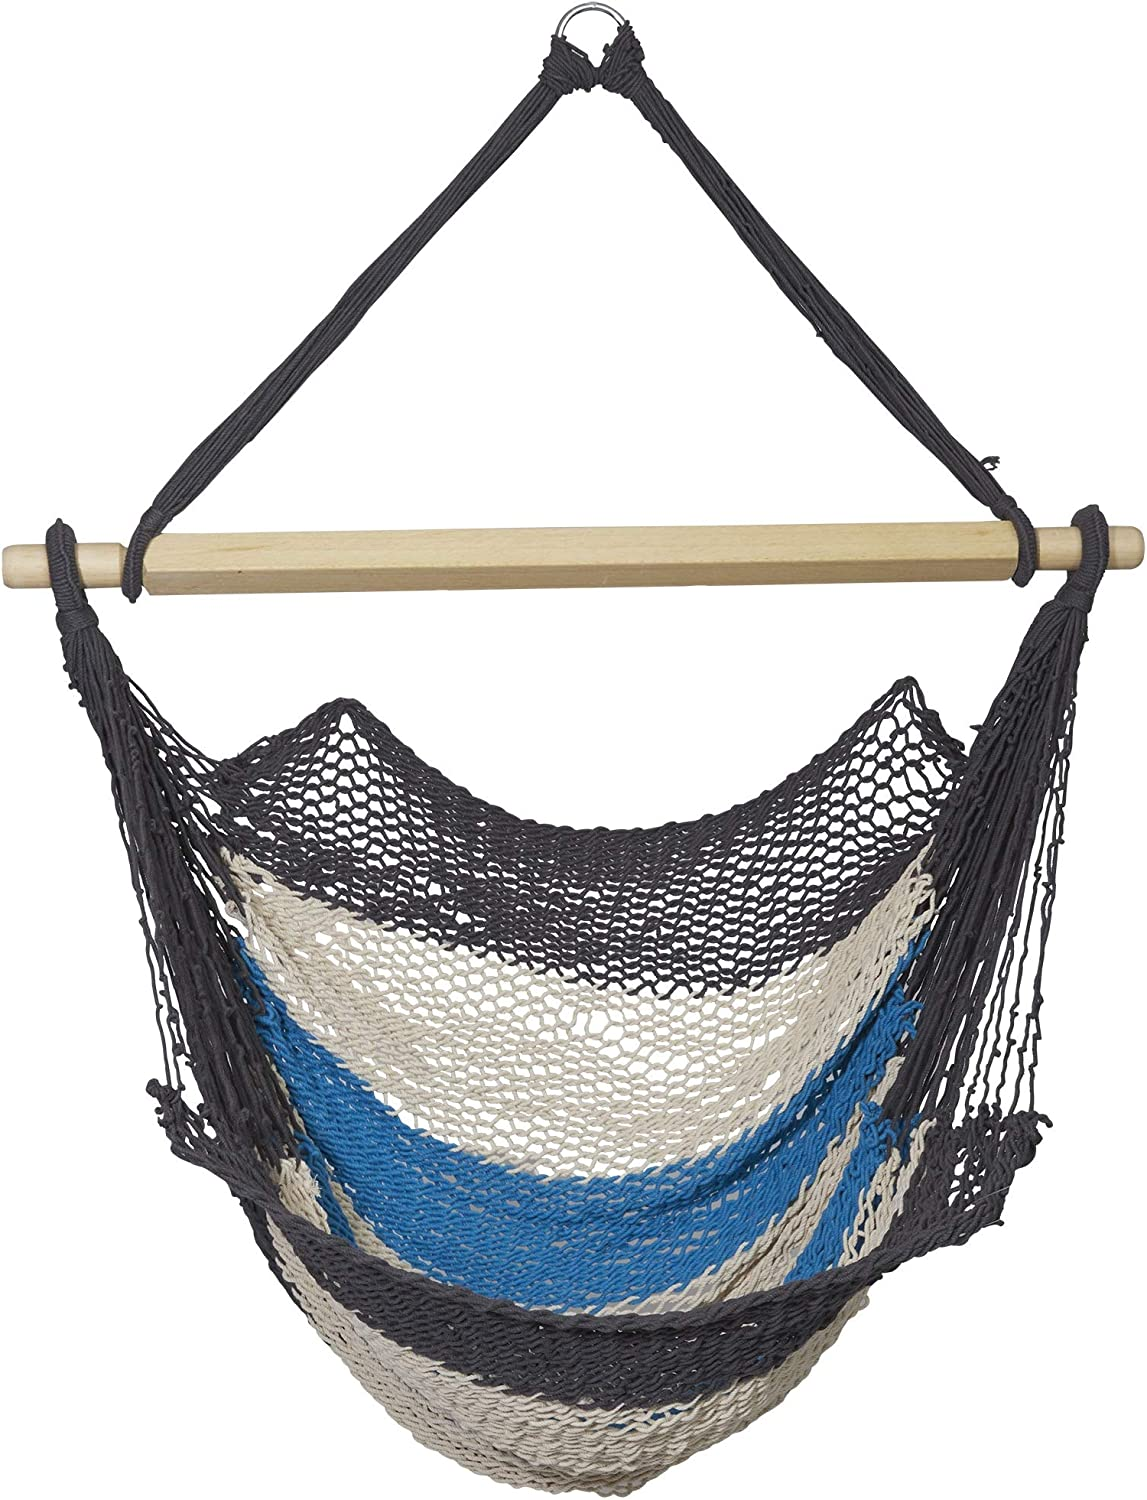 Sol Living EN-OL-MH002 Hammock Teal Swing Free shipping on posting reviews Grey Popular product White